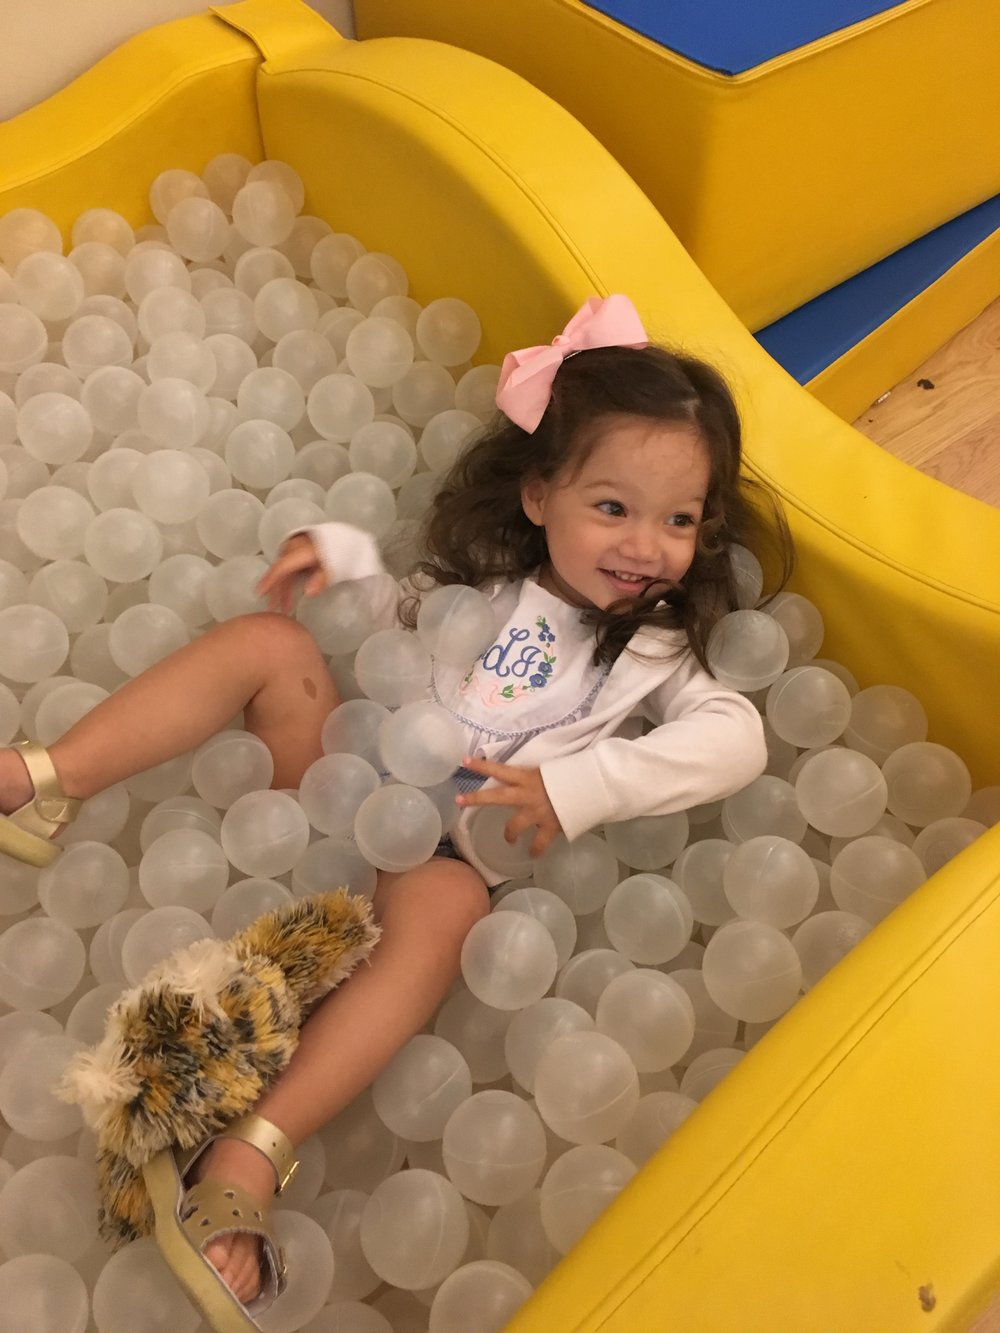 avvie in the ball pit at the hotel